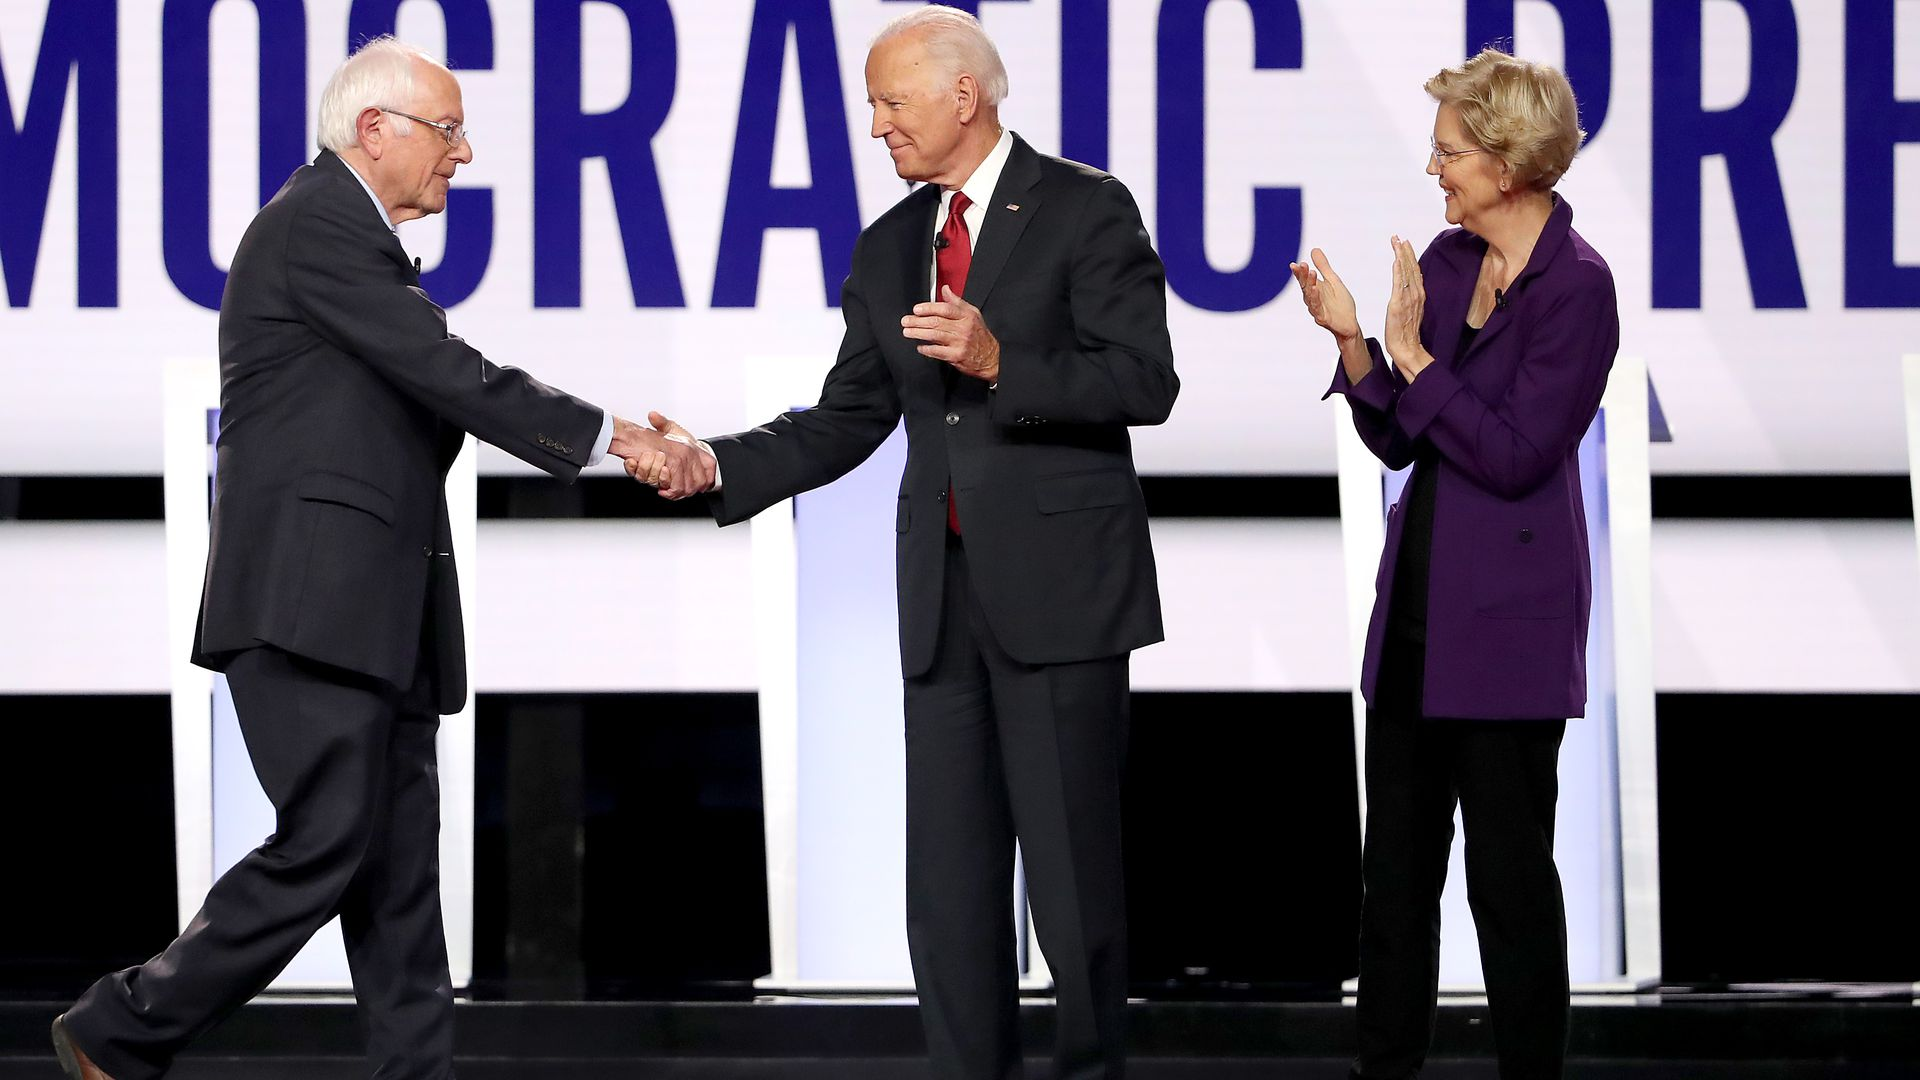 First Time Home Buyer Grant Ohio 2020.2020 Democratic Presidential Candidates Talk Abortion Big